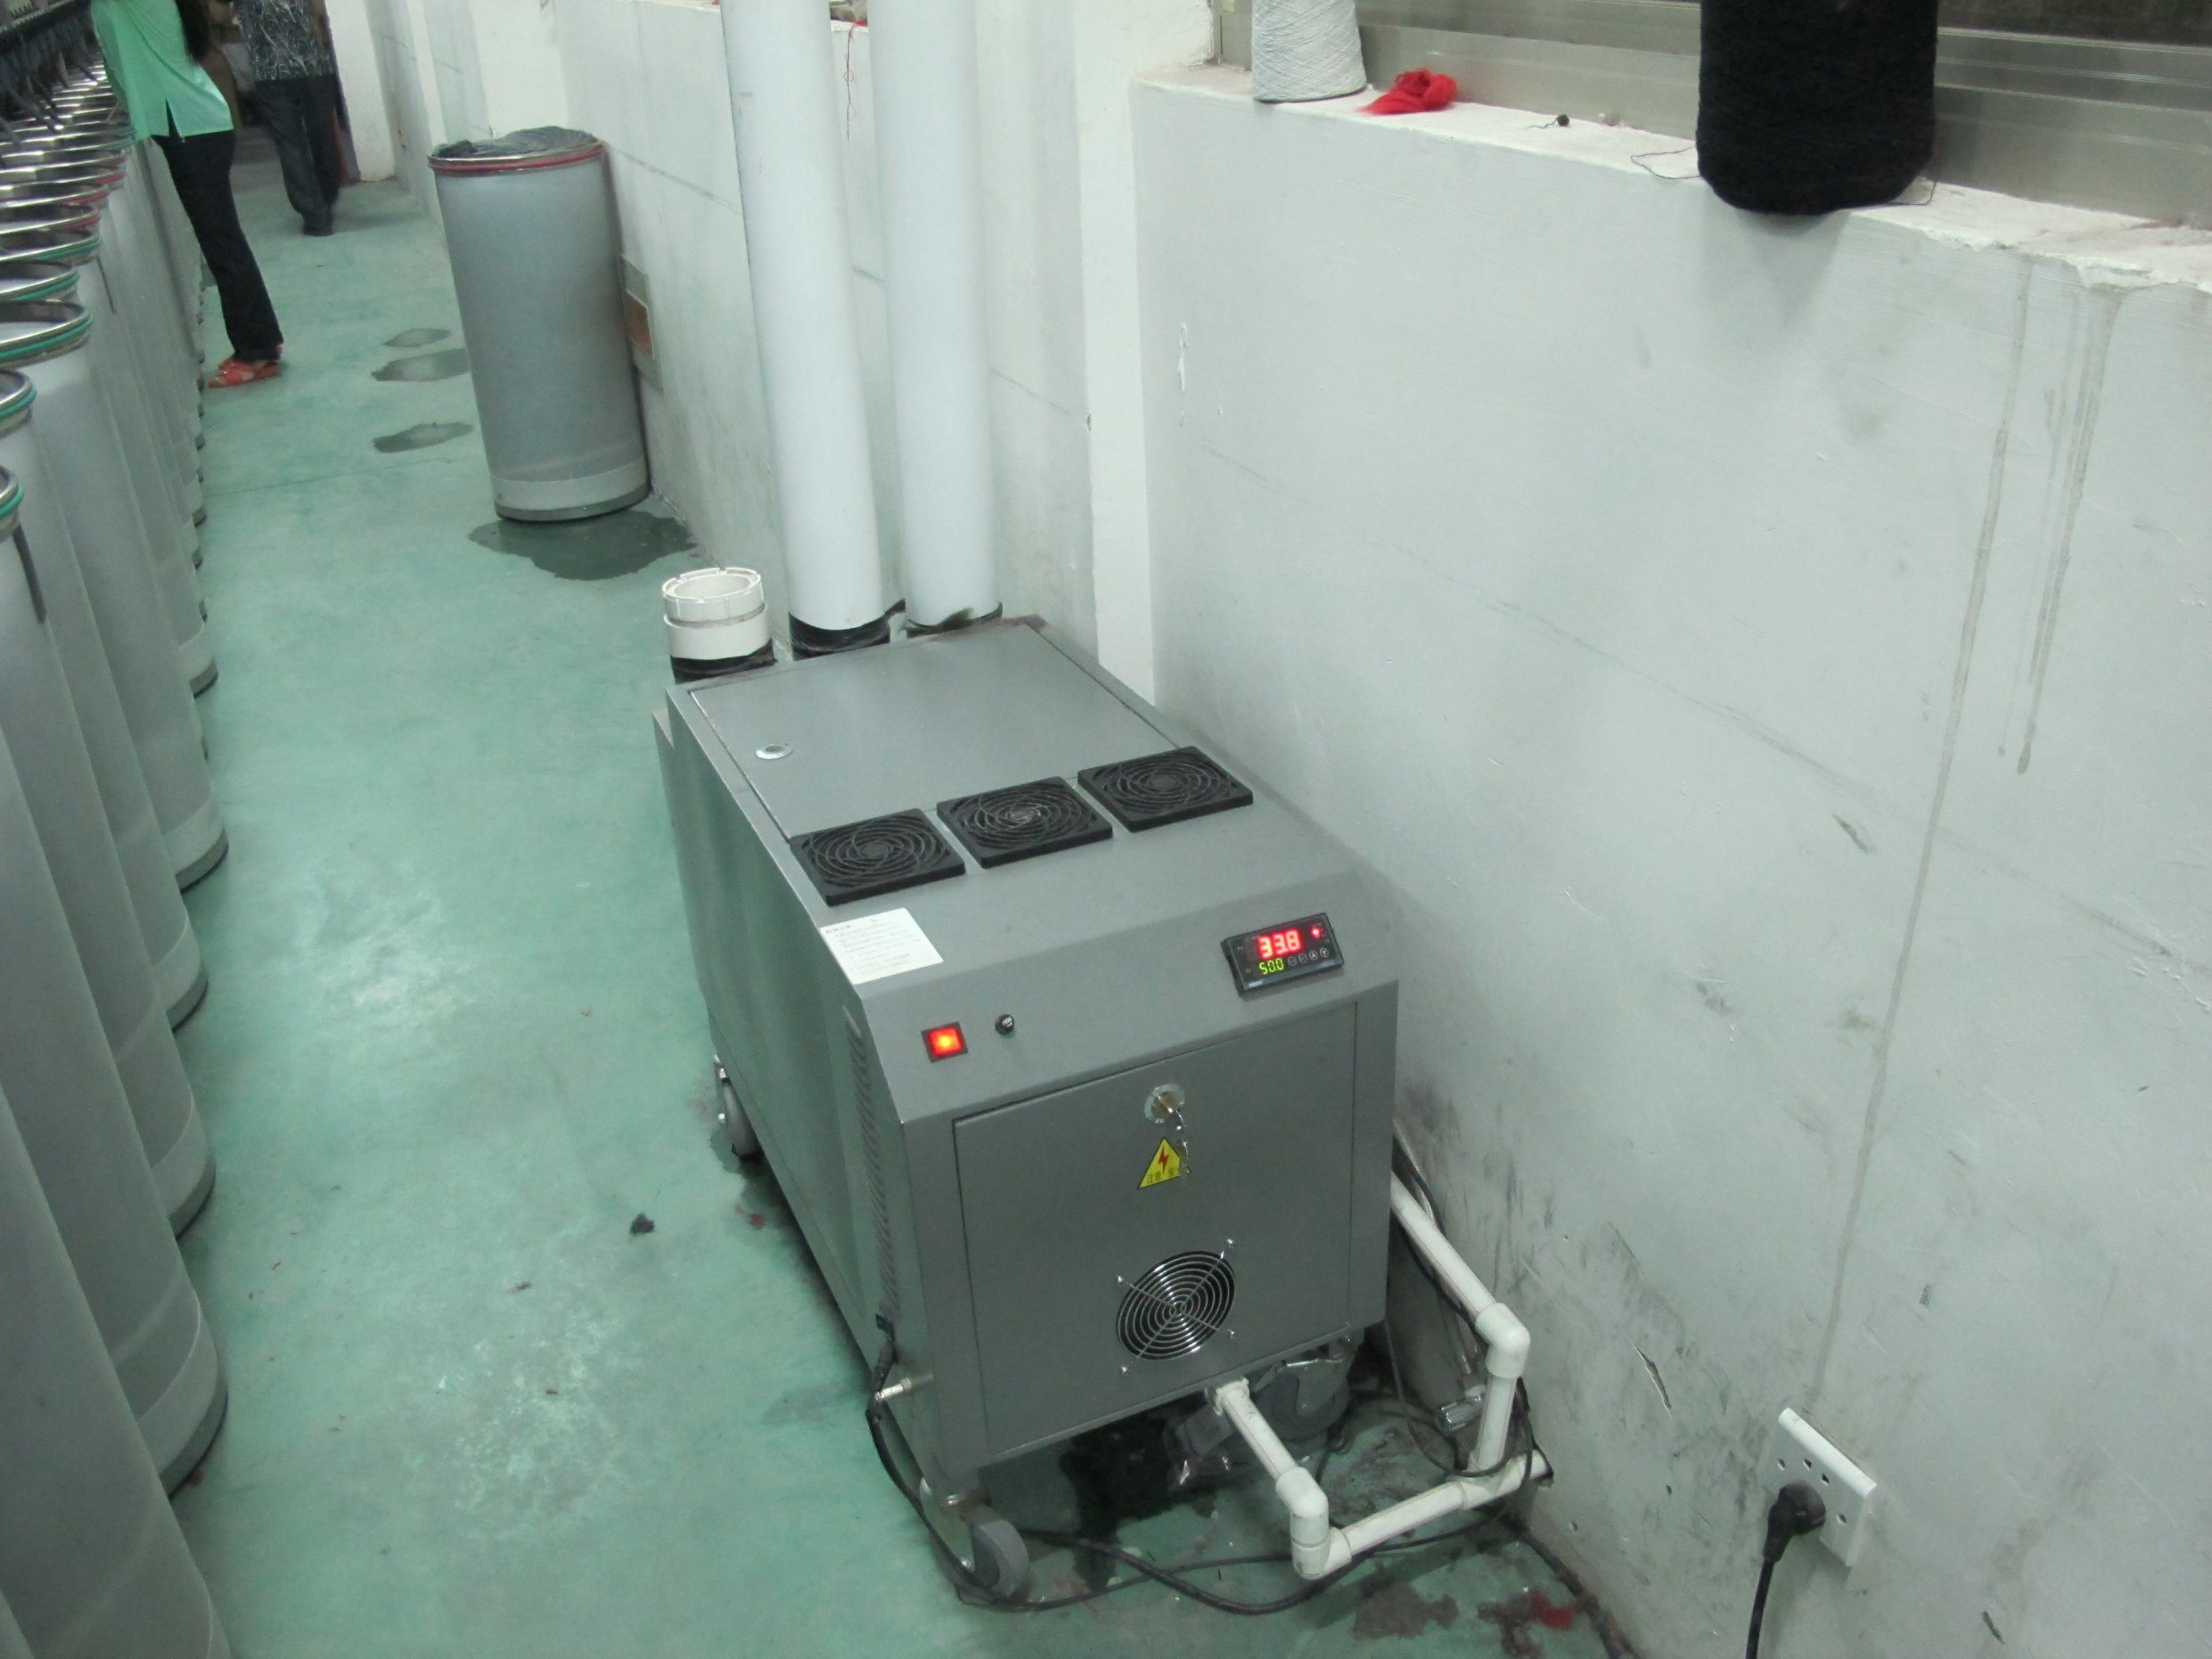 Dq-091 Humidifier for The Spinning Workshop